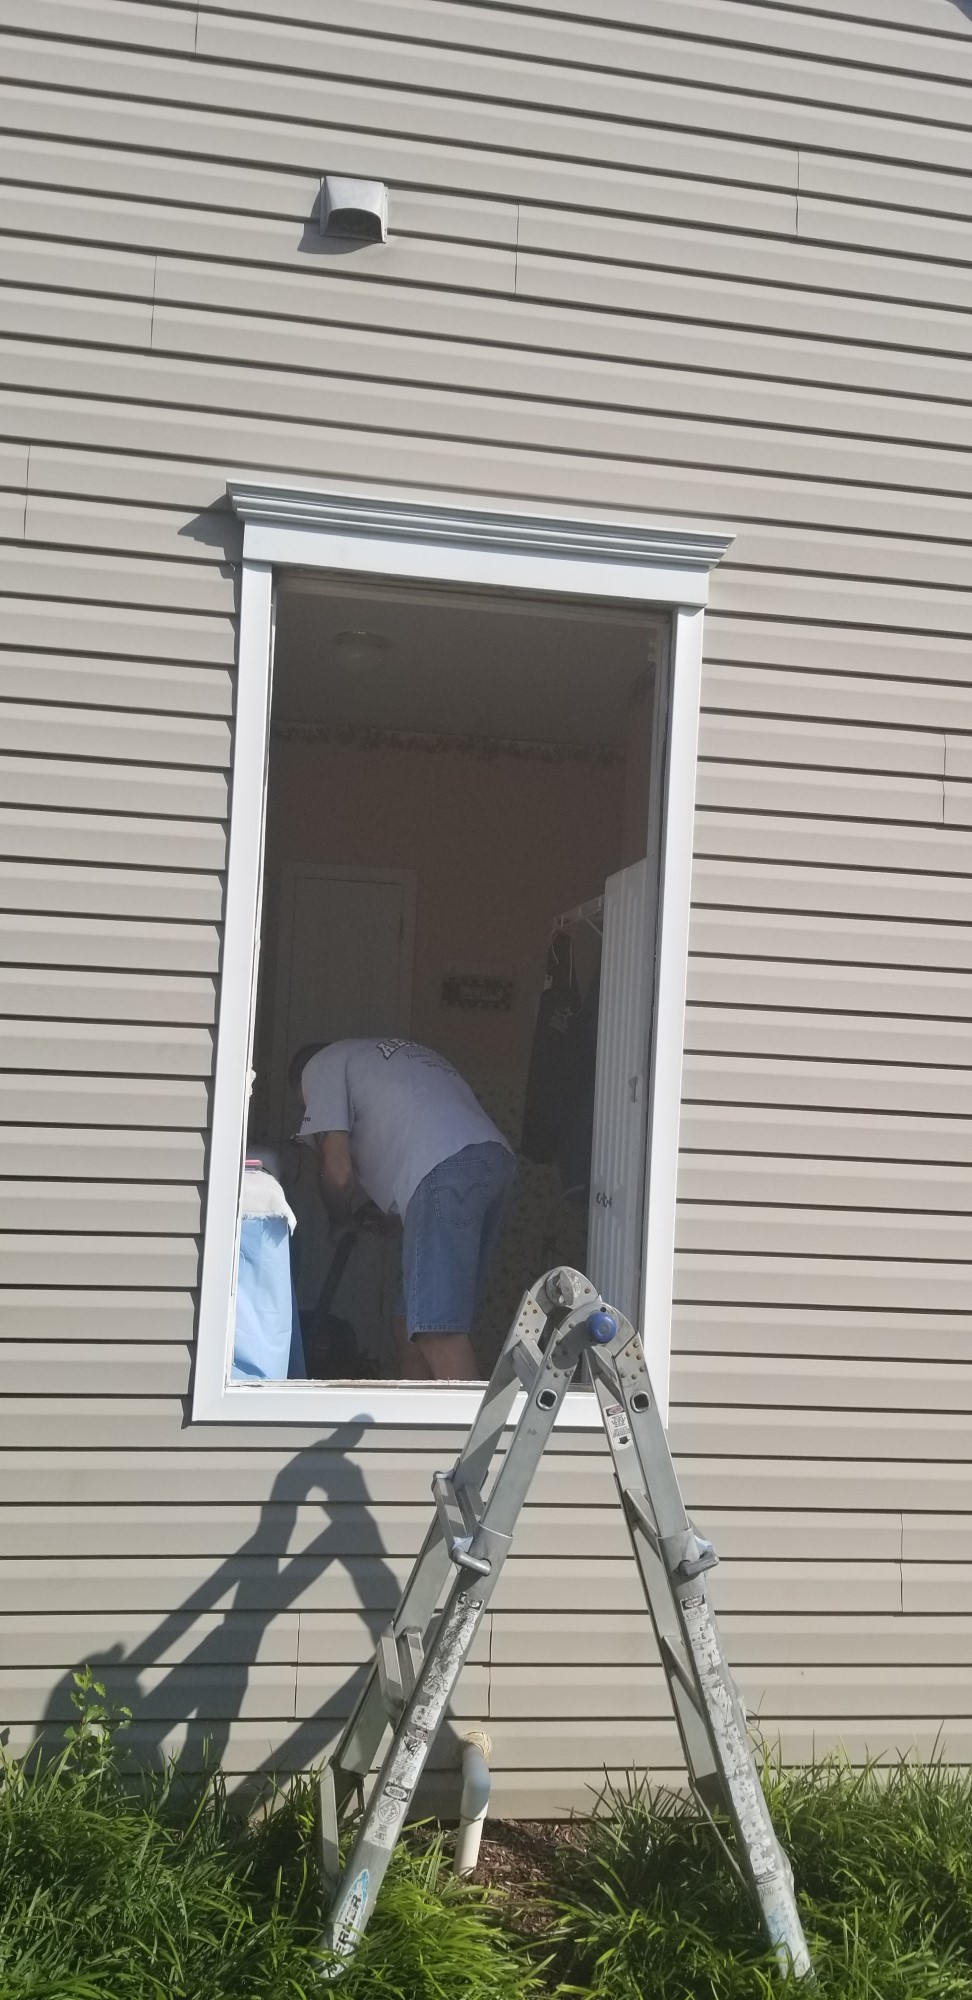 Window Mania is a window and door replacement and installation business with a variety of quality replacement doors and new windows we can install for you in the Pottstown, Allentown, Boyertown, Limerick, Birdsboro, and Exeter Township areas.